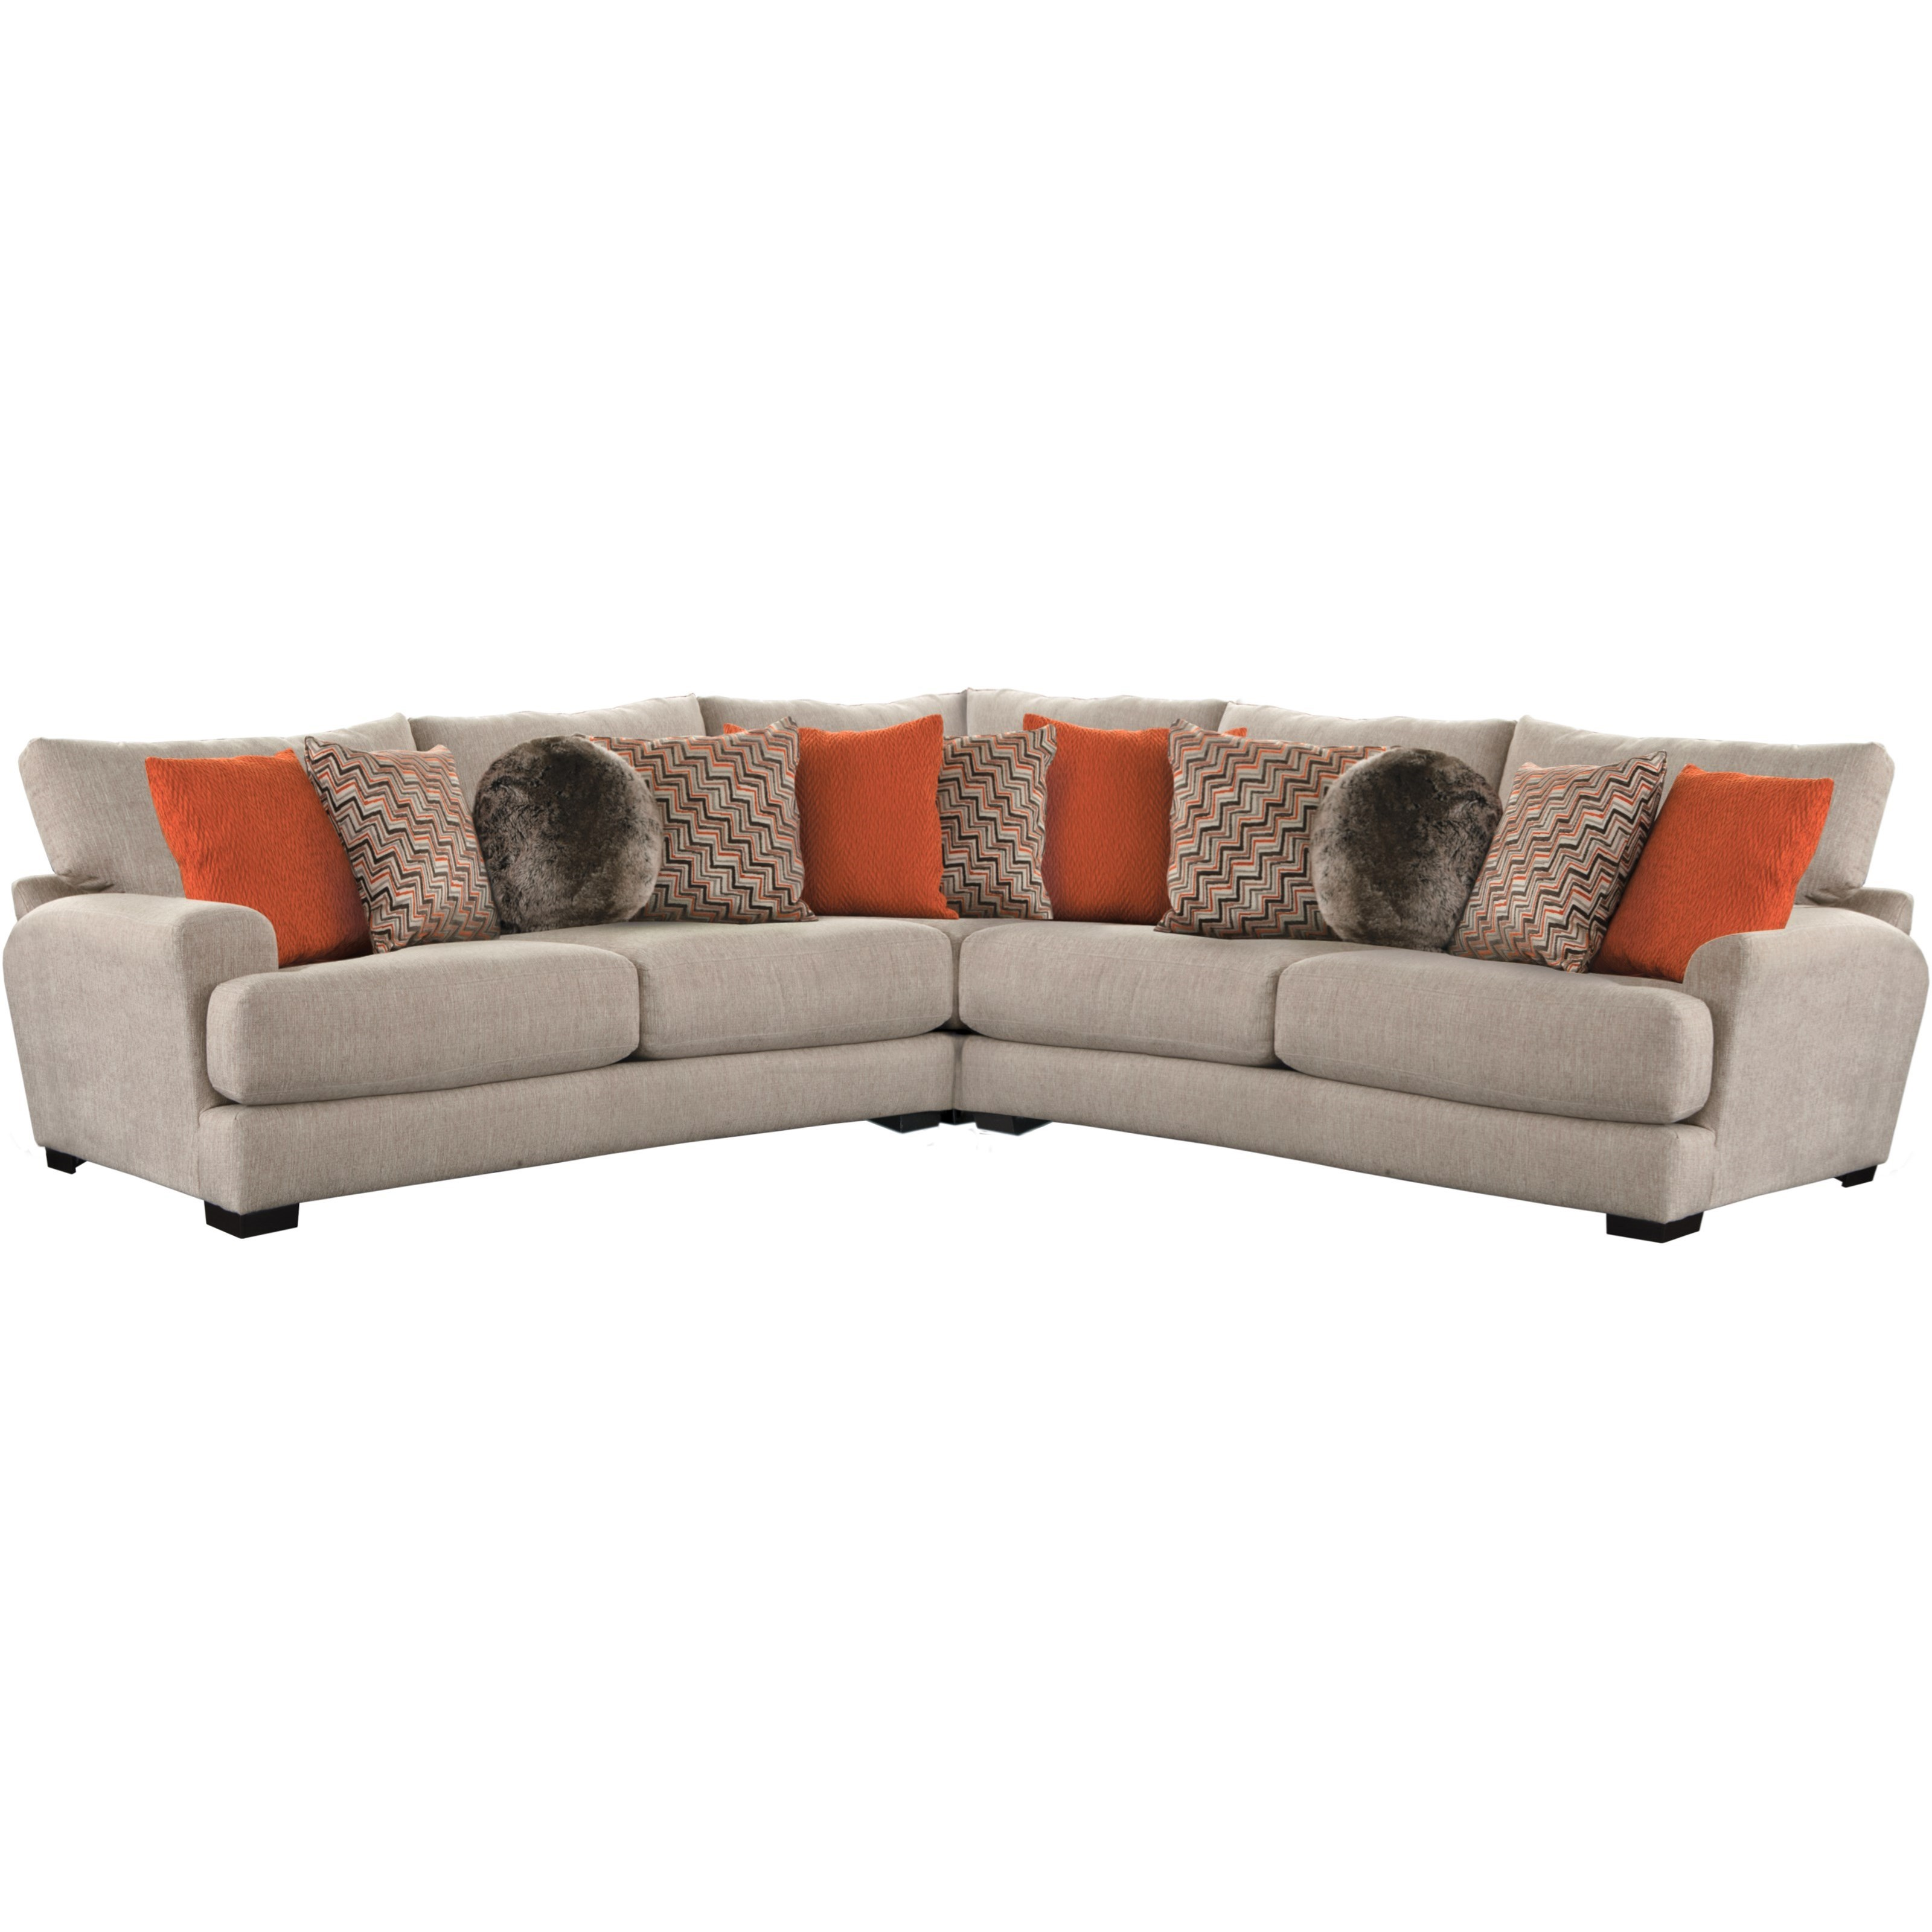 Ava Sectional Sofa with 4 Seats & USB Ports by Jackson Furniture at Westrich Furniture & Appliances